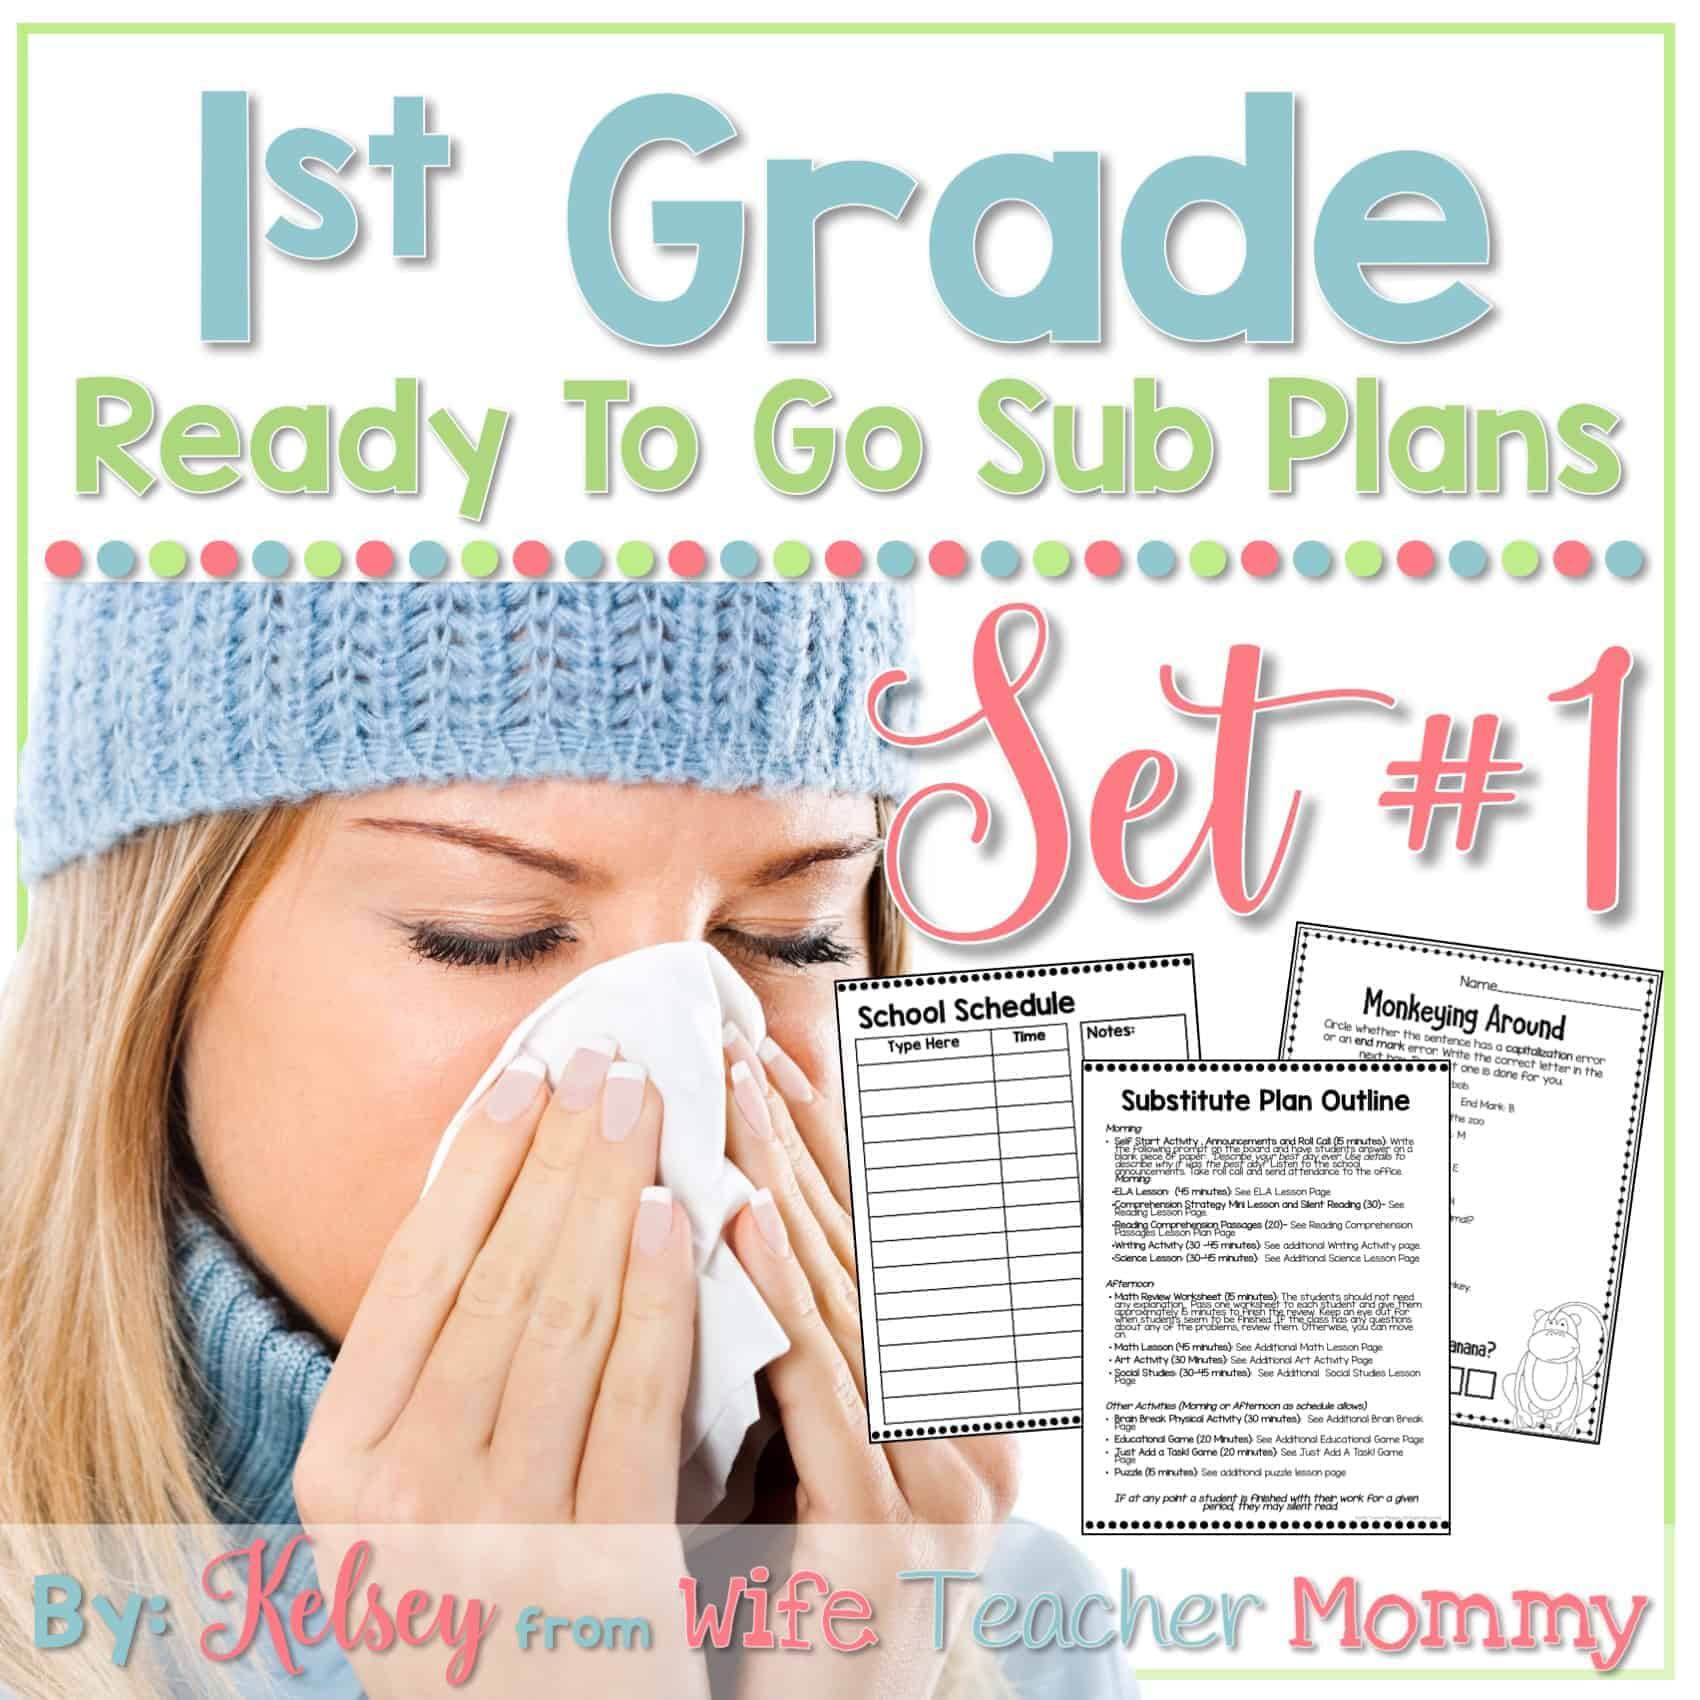 hight resolution of 1st Grade Ready To Go Sub Plans Set #1 - Wife Teacher Mommy